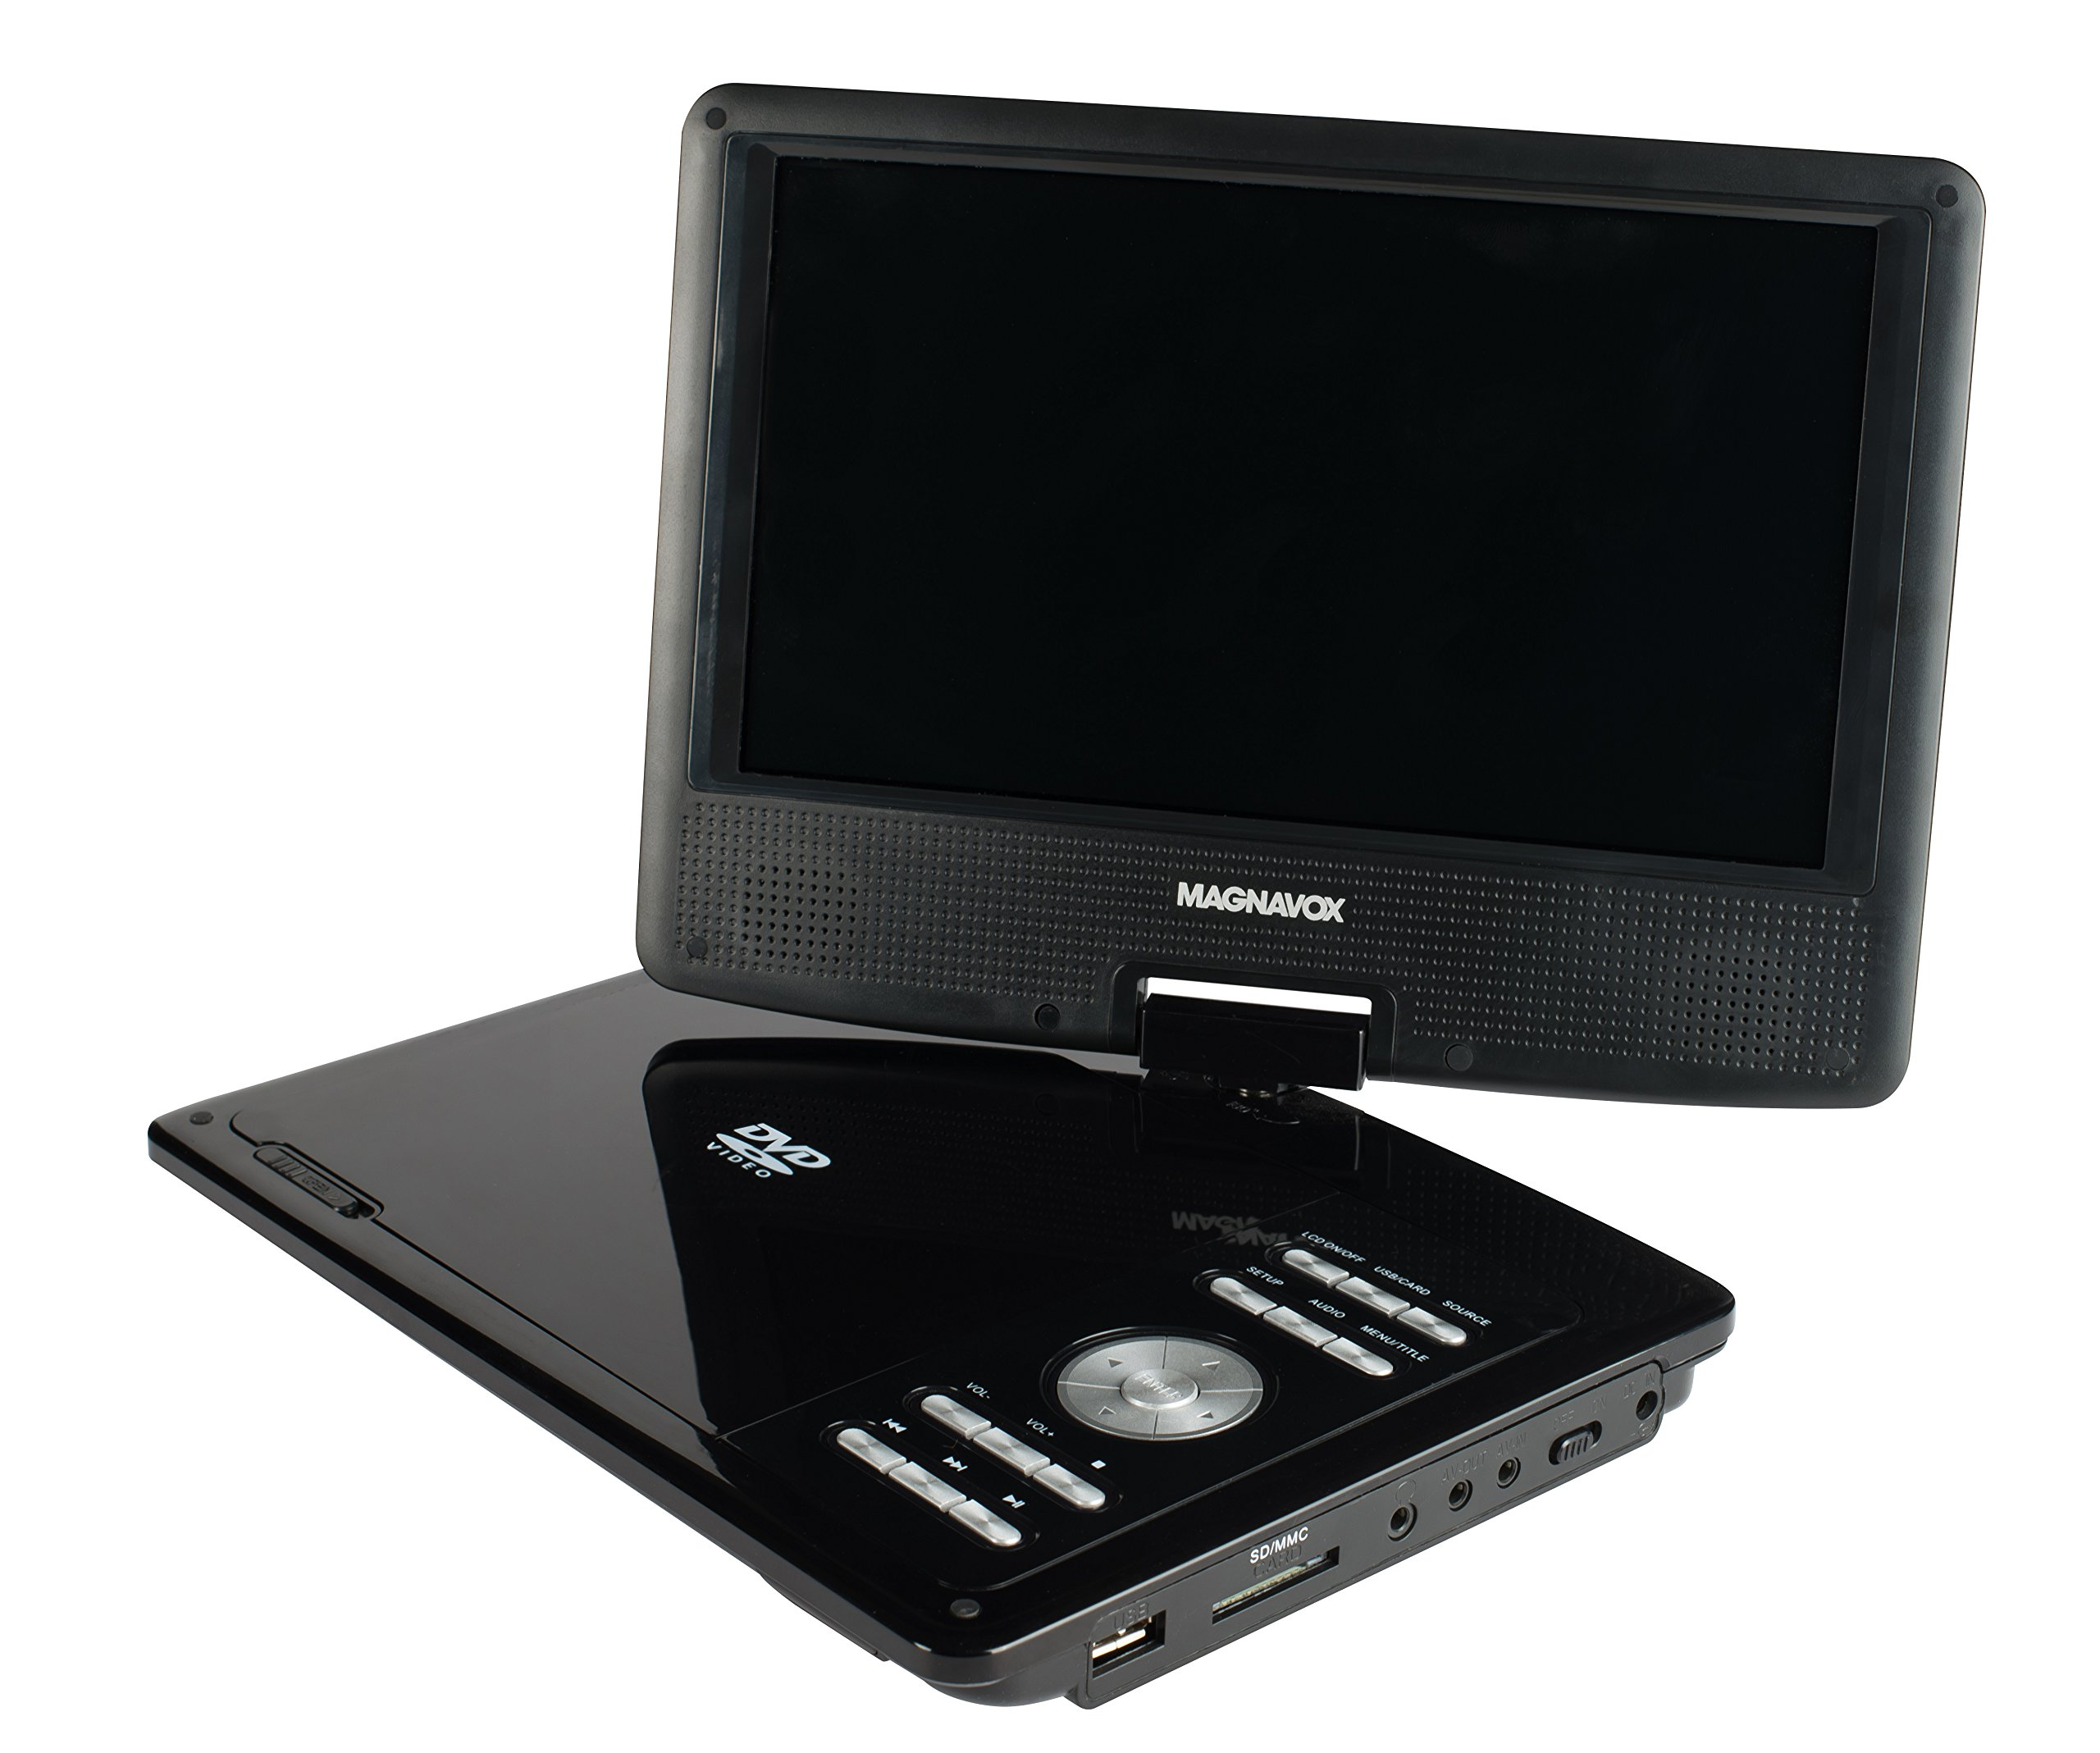 Magnavox 9 Inch TFT Swivel Screen Portable DVD/CD Player With USB/SD card slot, Remote And Car Adapter Rechargeable Battery